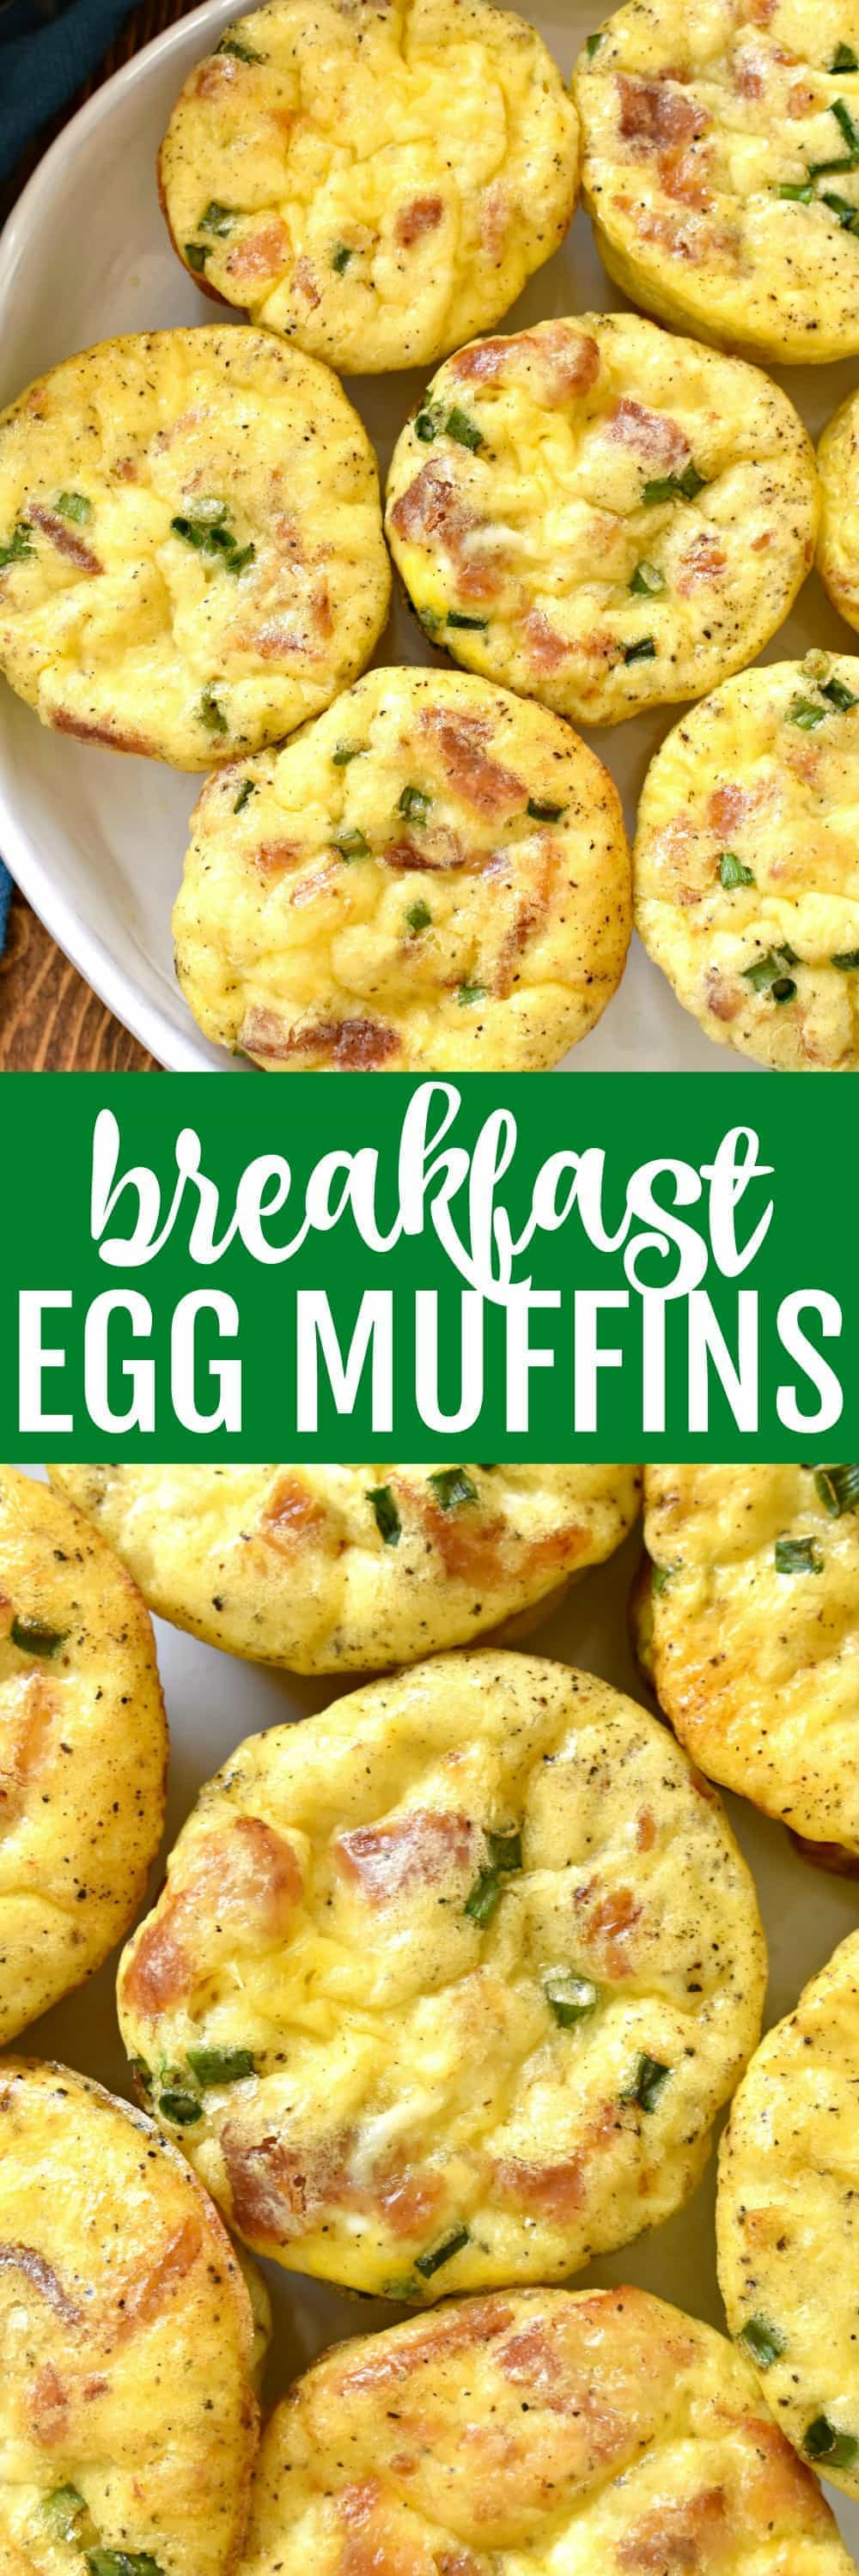 Collage image of Breakfast Egg Muffins